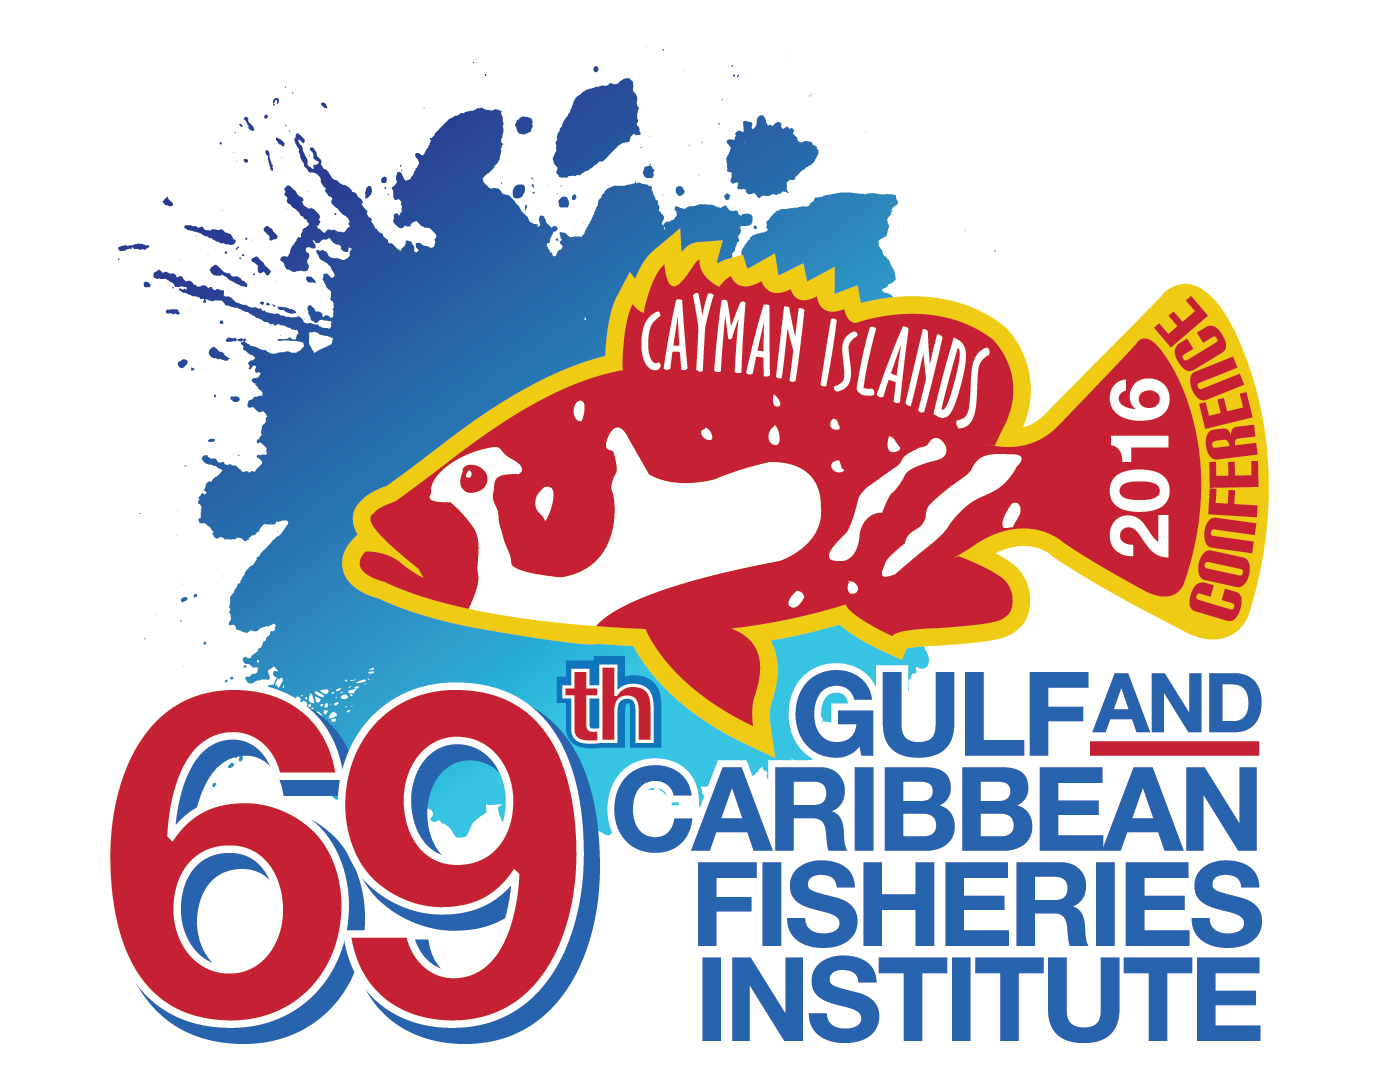 GCFI Conference, Grand Cayman 2016 | DCNA on virgin islands logo, cayman islands logo, bolivia logo, necker island logo, japan logo, freeport logo, peru logo, lebanon logo, papua new guinea logo, morocco logo, ukraine logo, cayman airways logo, grand namibia logo, fiji logo, antigua logo, poland logo, philippines logo, grand banks logo, united arab emirates logo, vancouver logo,